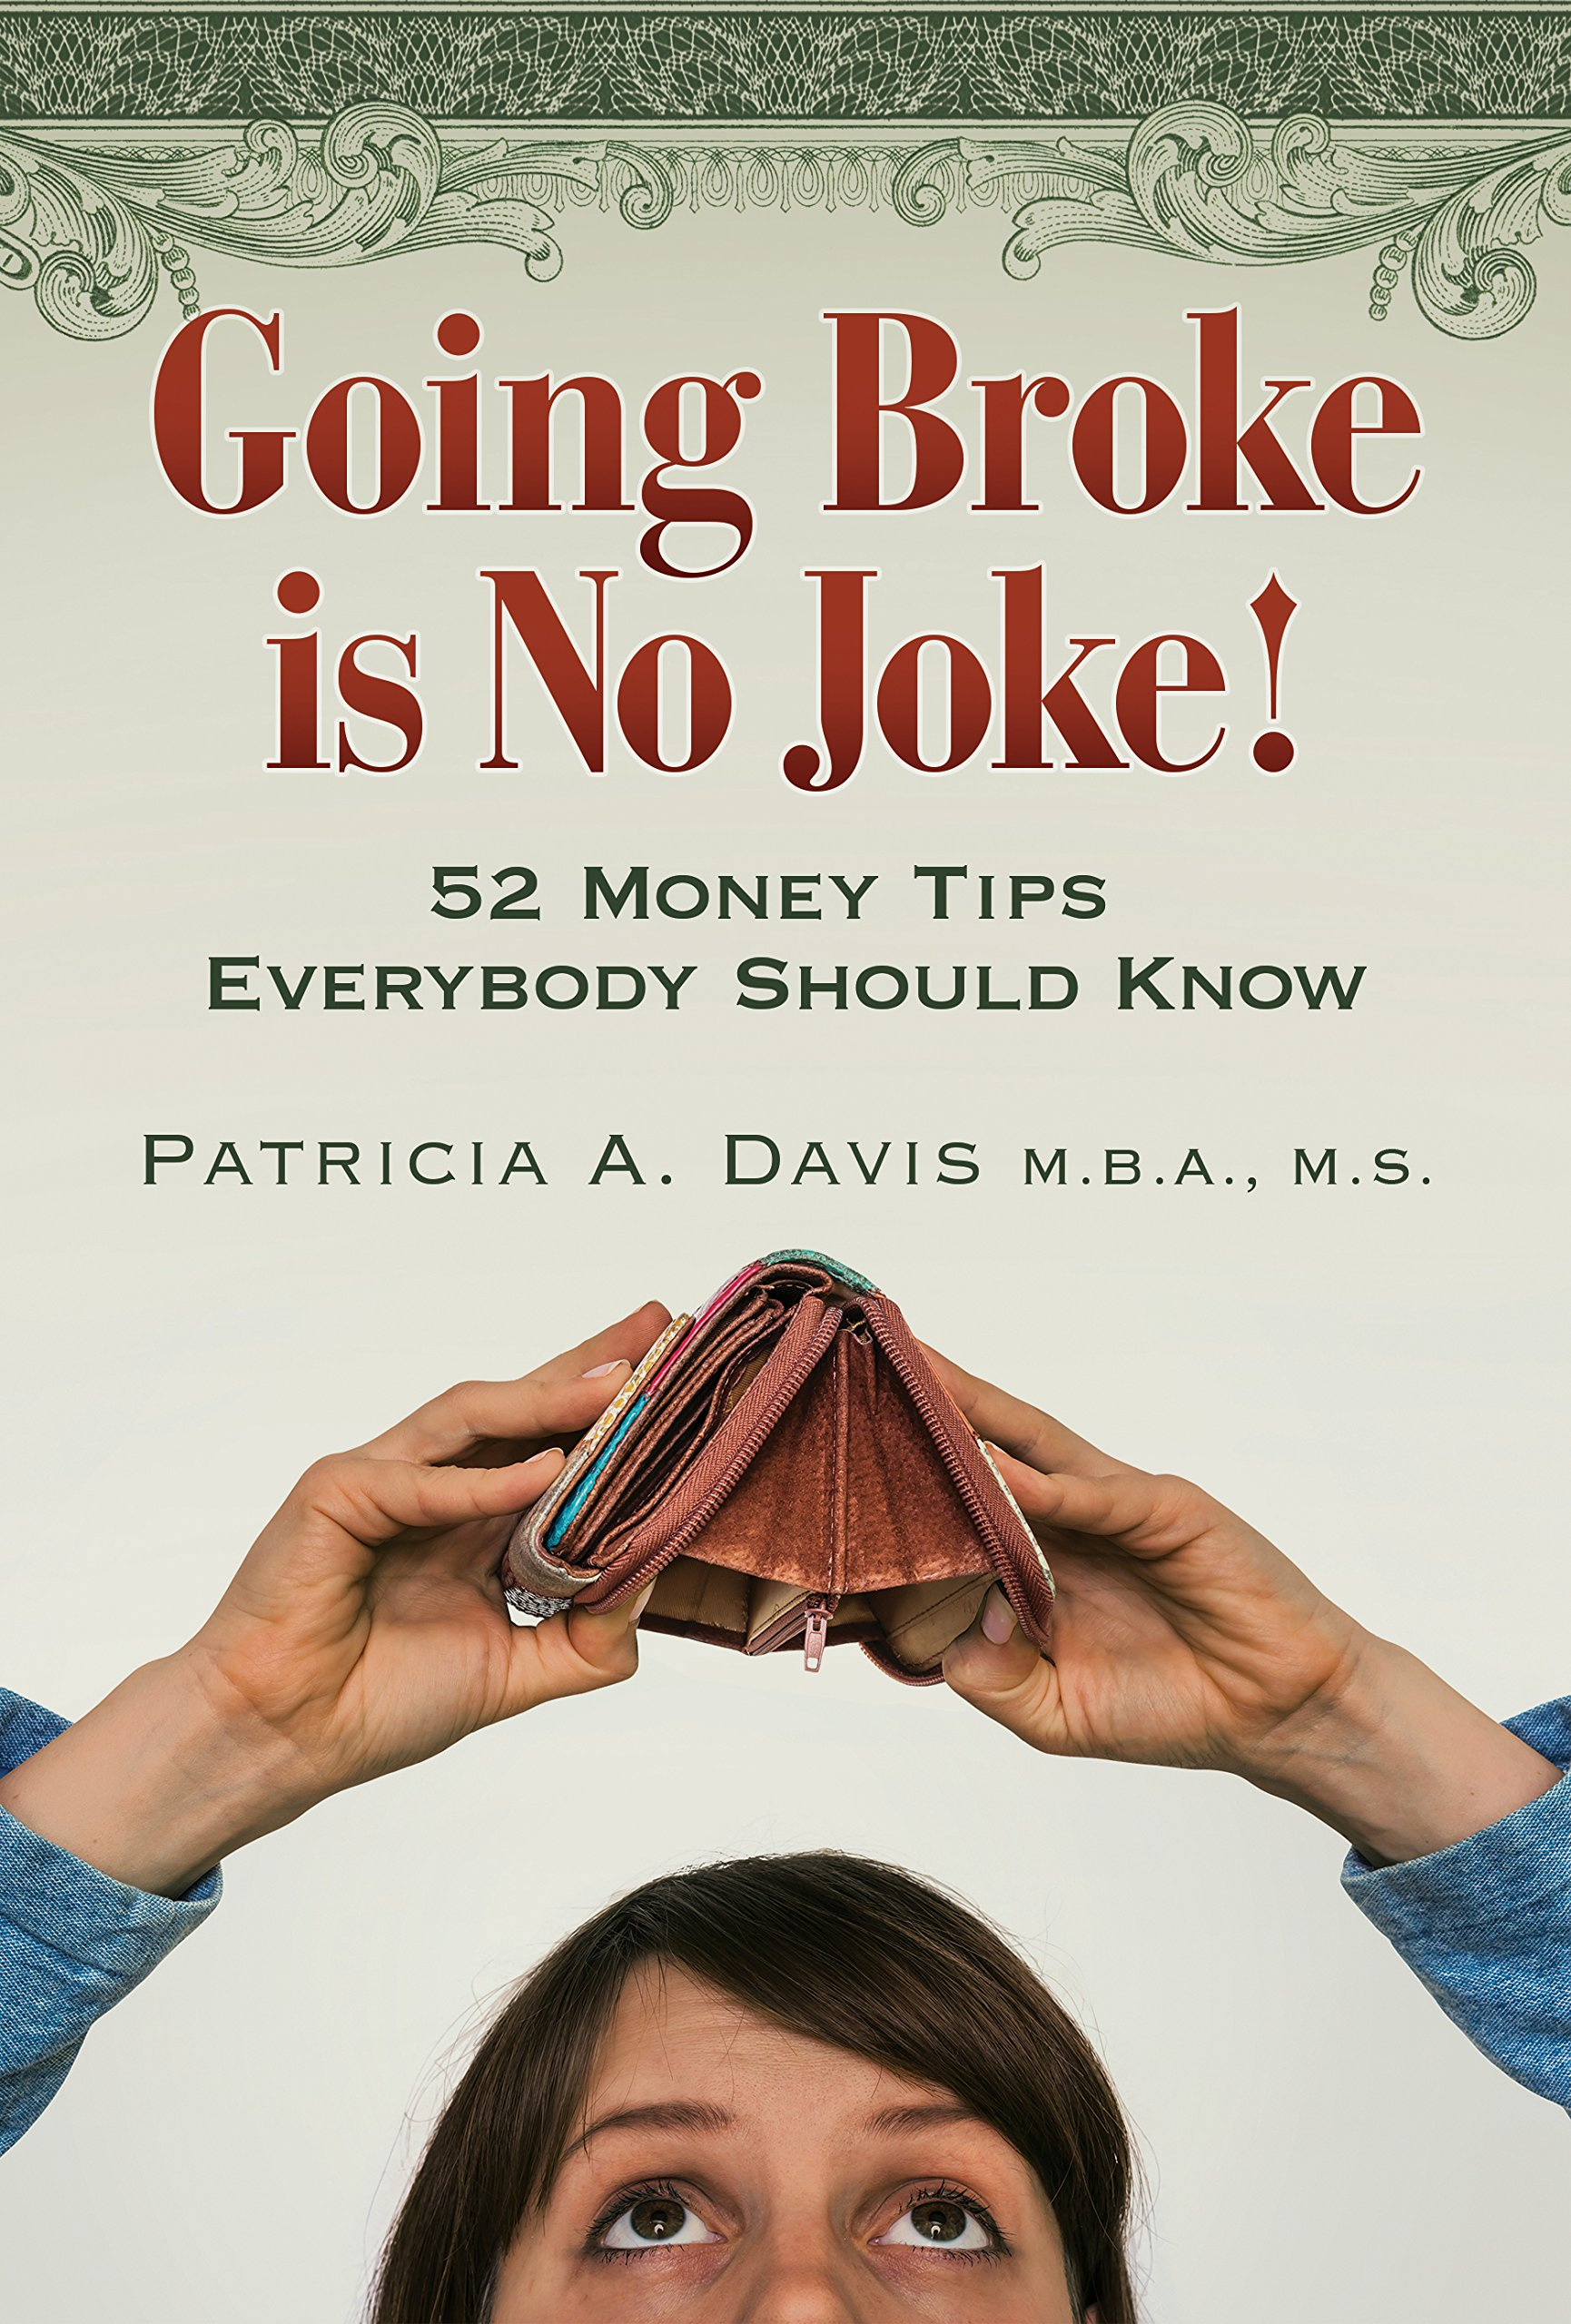 Going Broke is No Joke!: 52 Money Tips Everyone Should Know